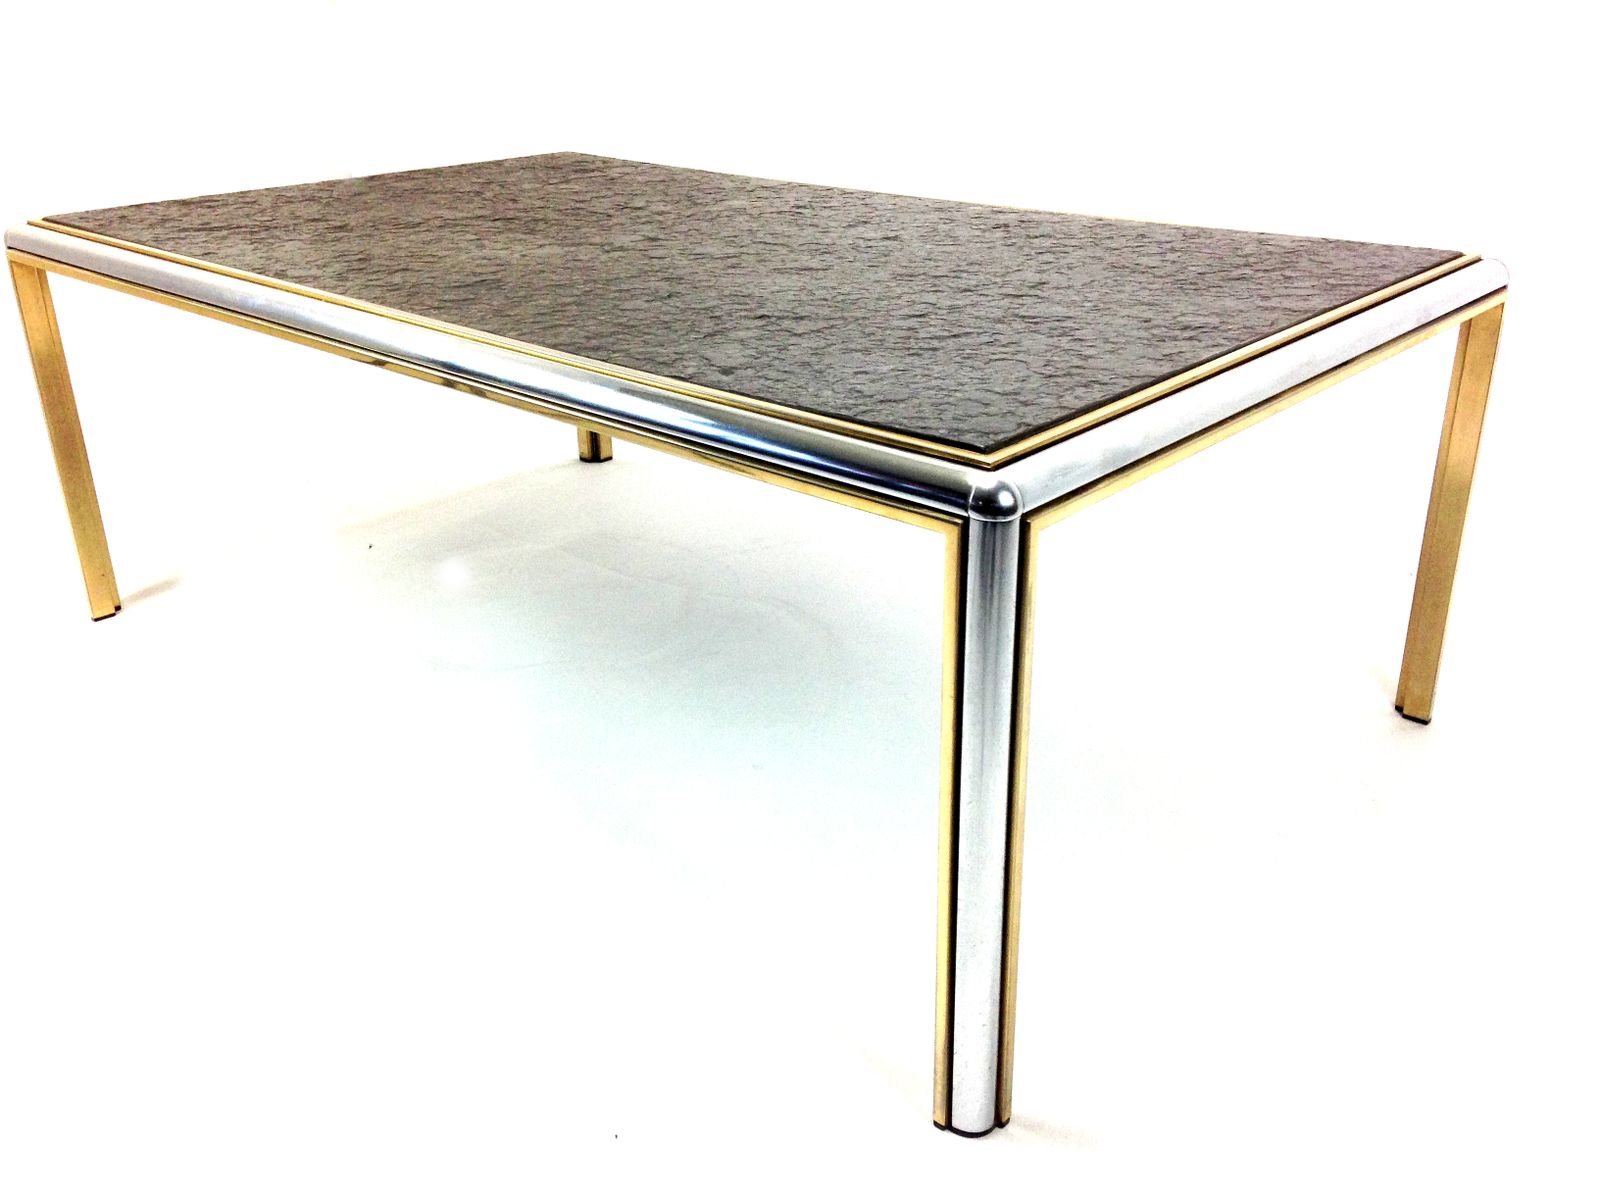 table basse mid century en chrome et ardoise en vente sur pamono. Black Bedroom Furniture Sets. Home Design Ideas